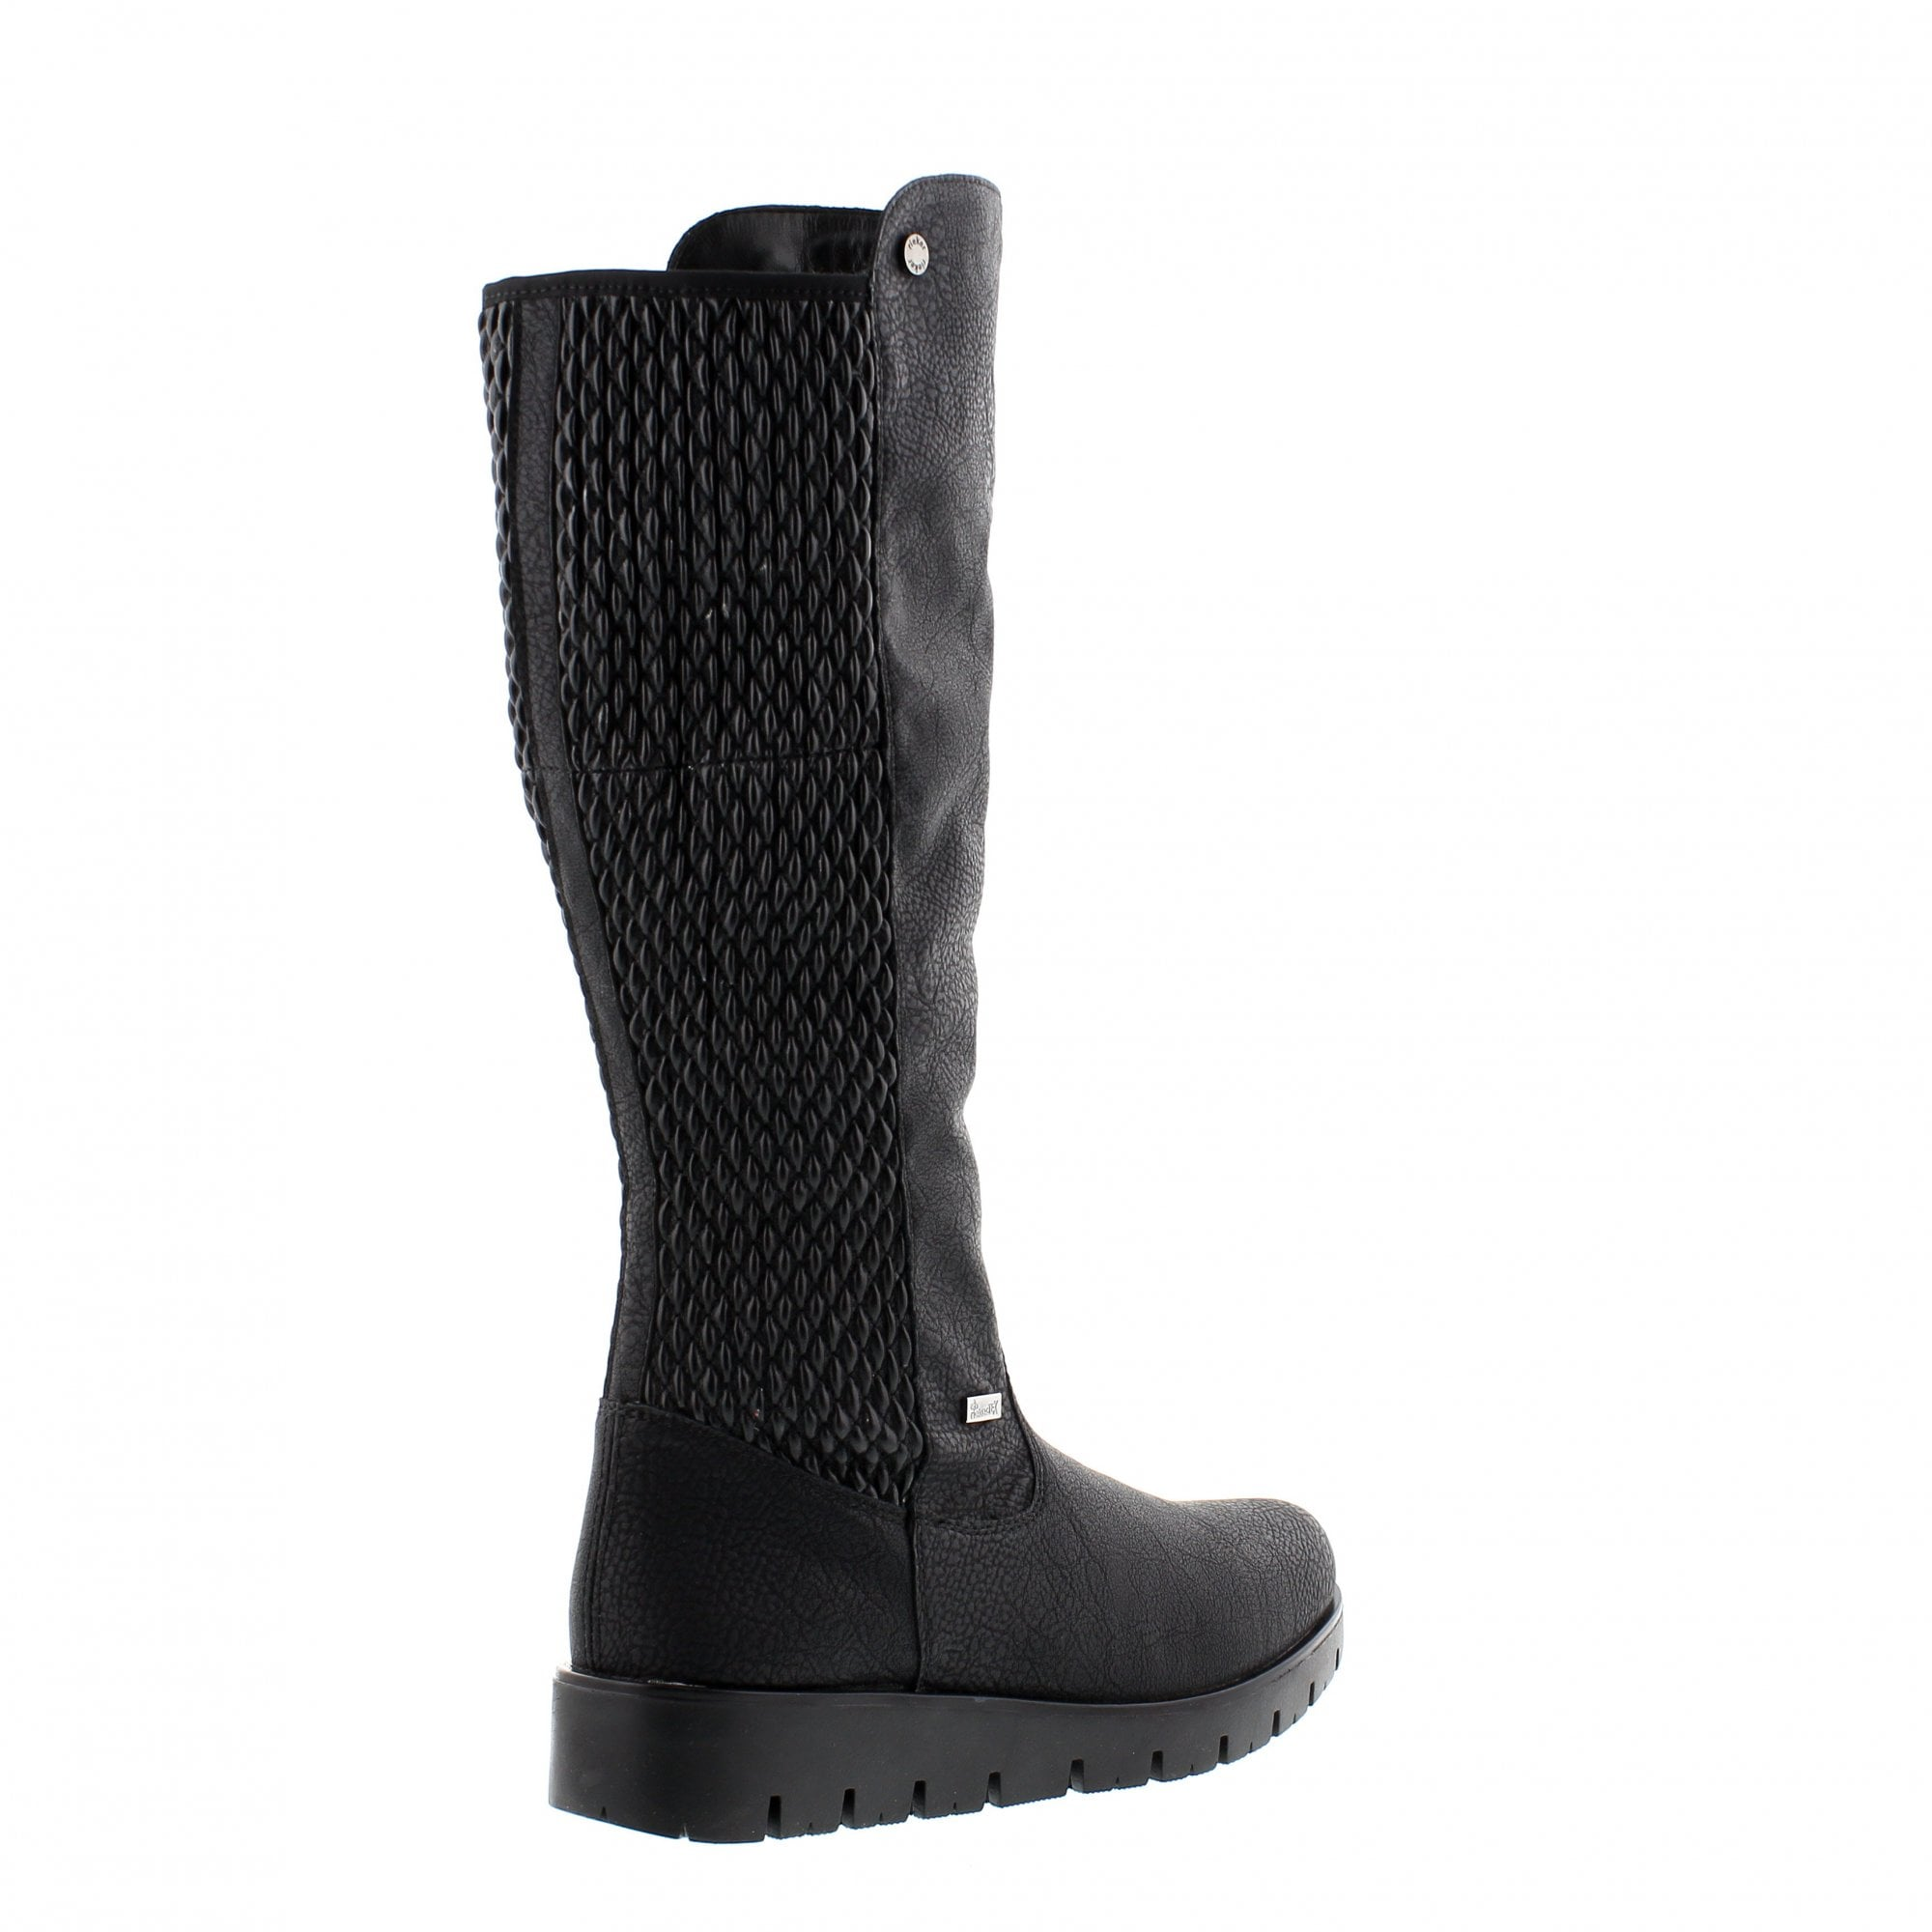 Womens Knee High Boots | Rogerson Shoes